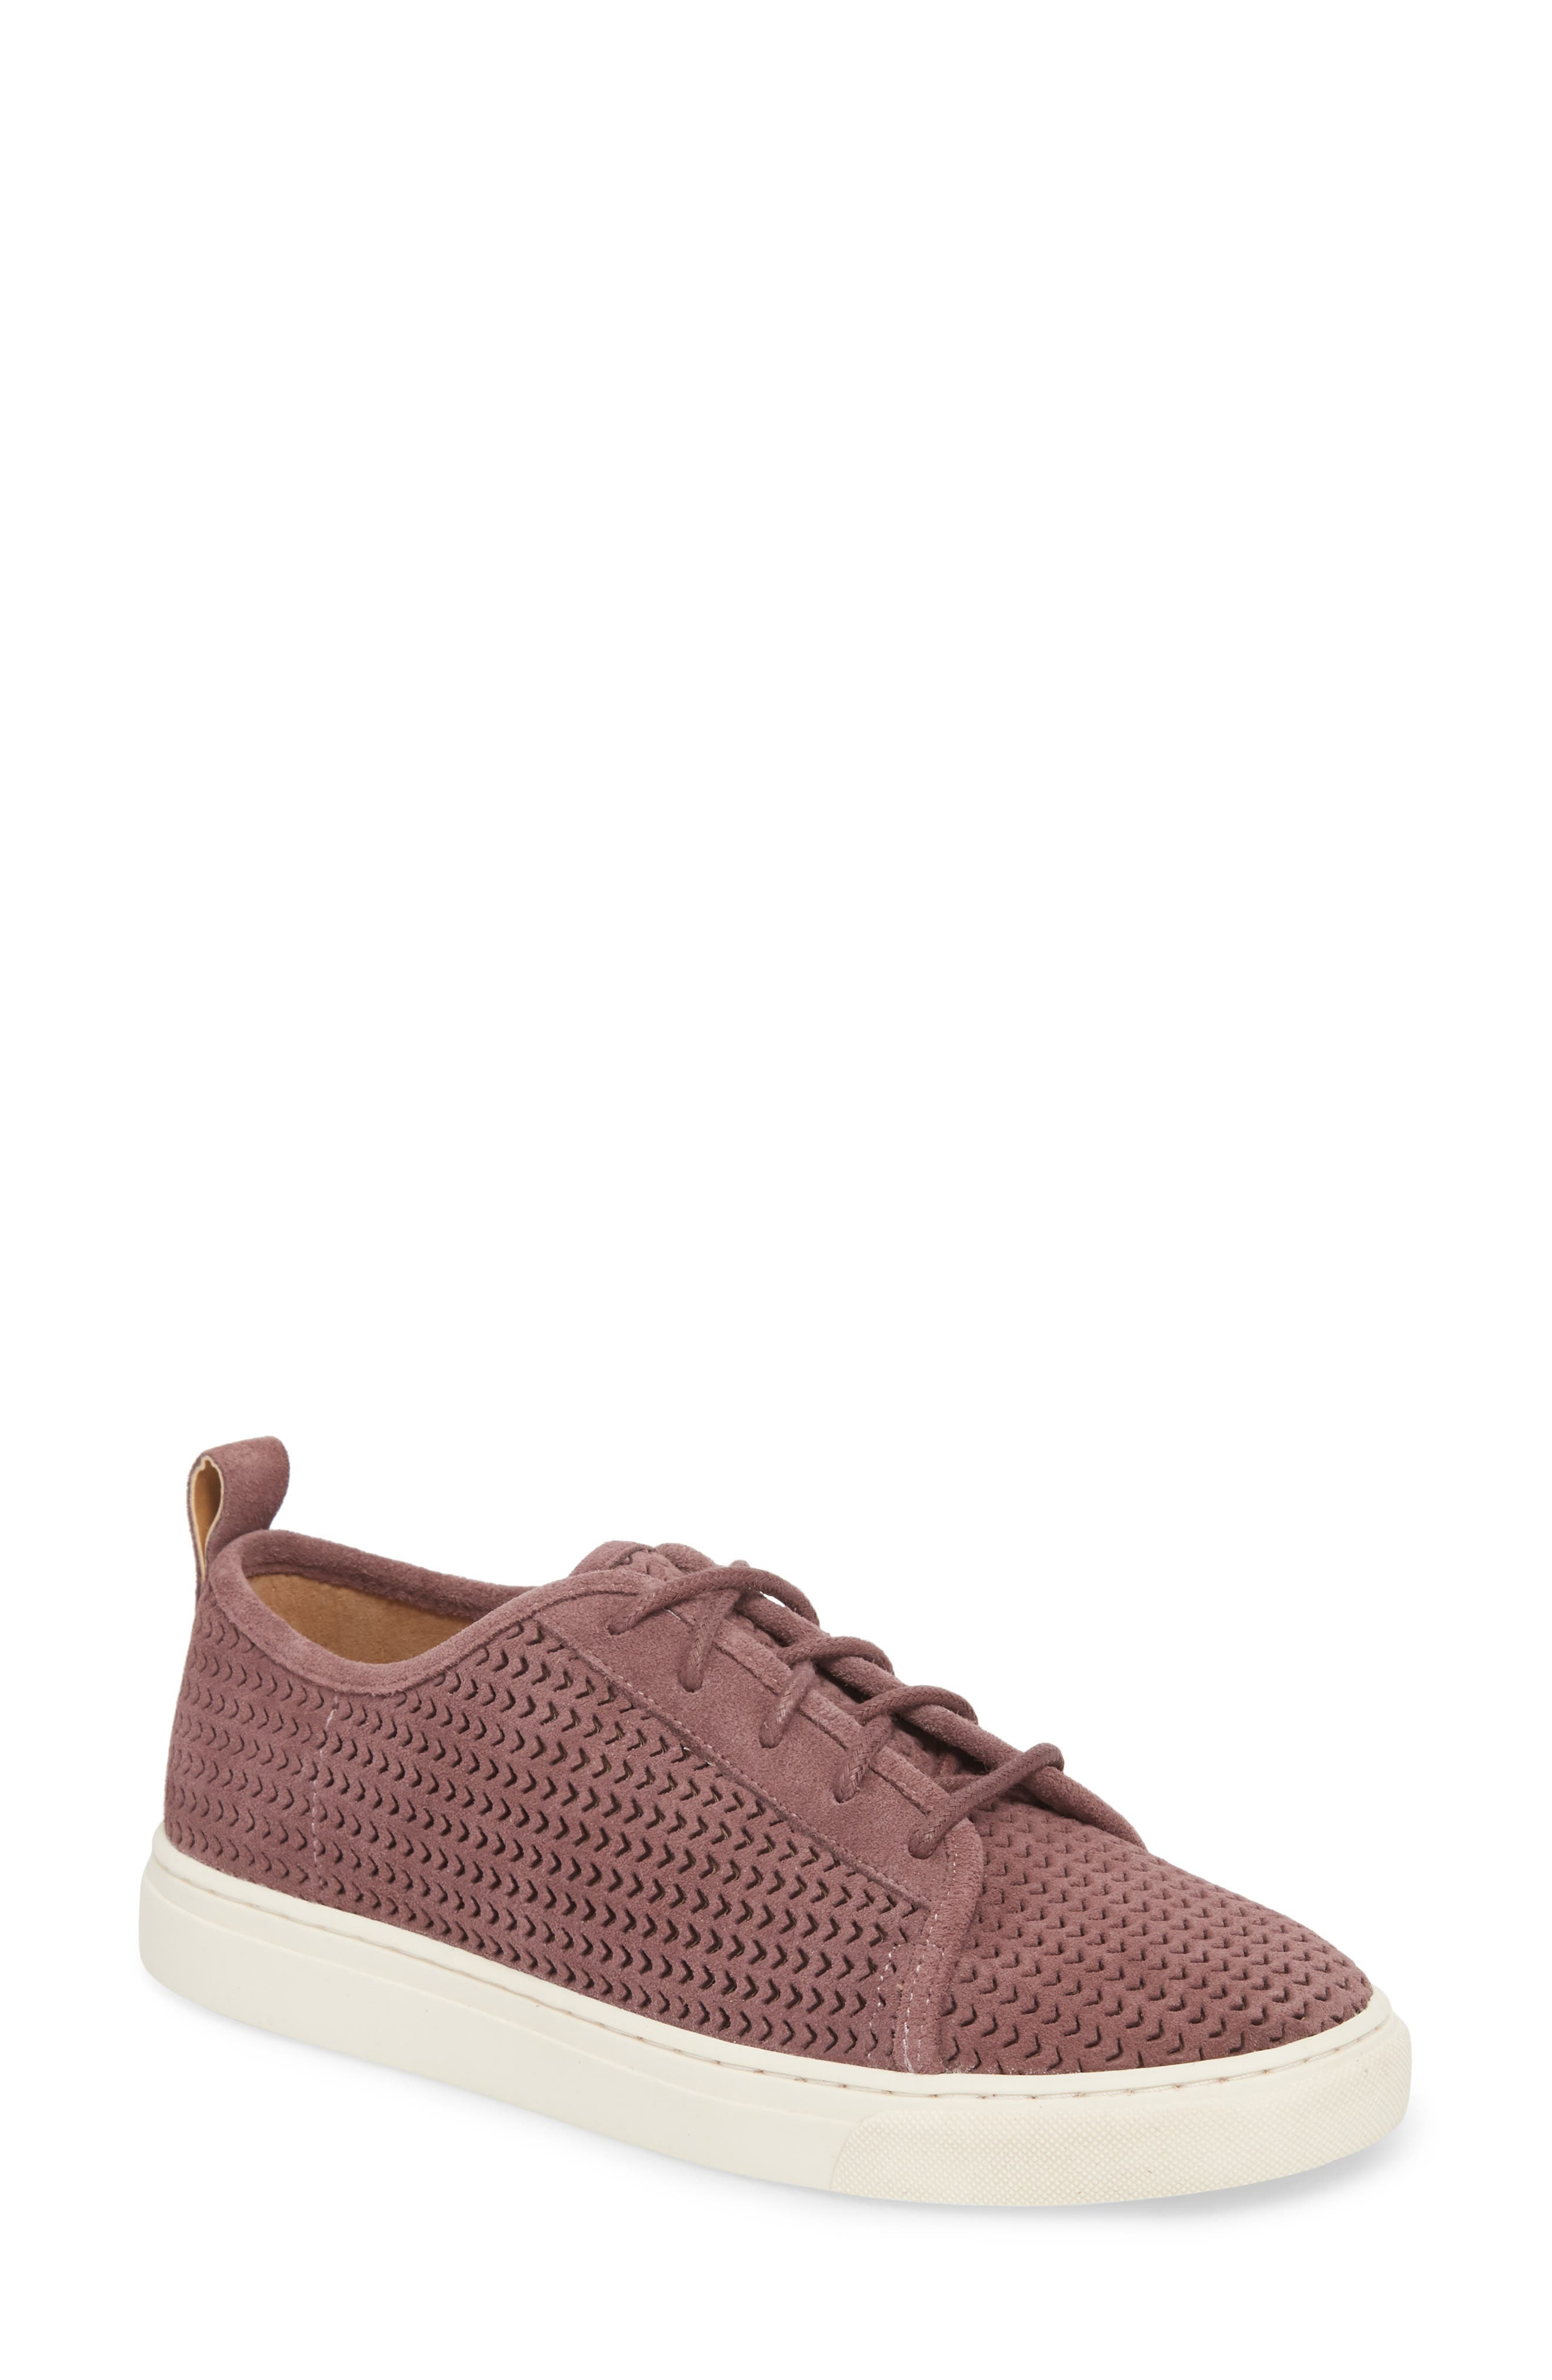 Lawove Sneaker,                         Main,                         color, Berry Smooth Suede